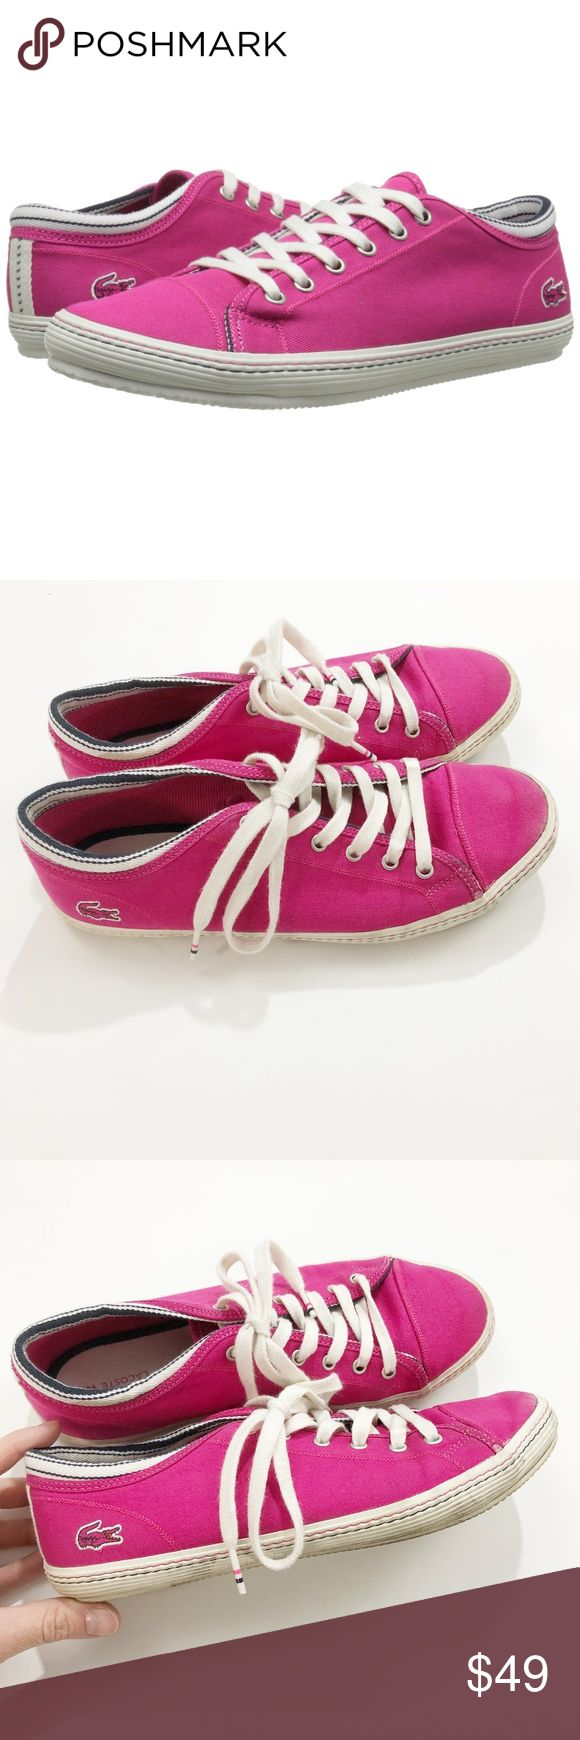 lacoste • pink fuchsia canvas fashion sneaker • 9 Fuchsia canvas sneaker from Lacoste. Low-top sneaker featuring lace-up vamp and iconic crocodile logo at heel  • 100% Canvas Cotton • Rubber wraparound sole • Ortholite performance insoles • size 9, but this brand runs large so fits more like a 9.5 • gently worn but still have a lot of life left in them Lacoste Shoes Sneakers